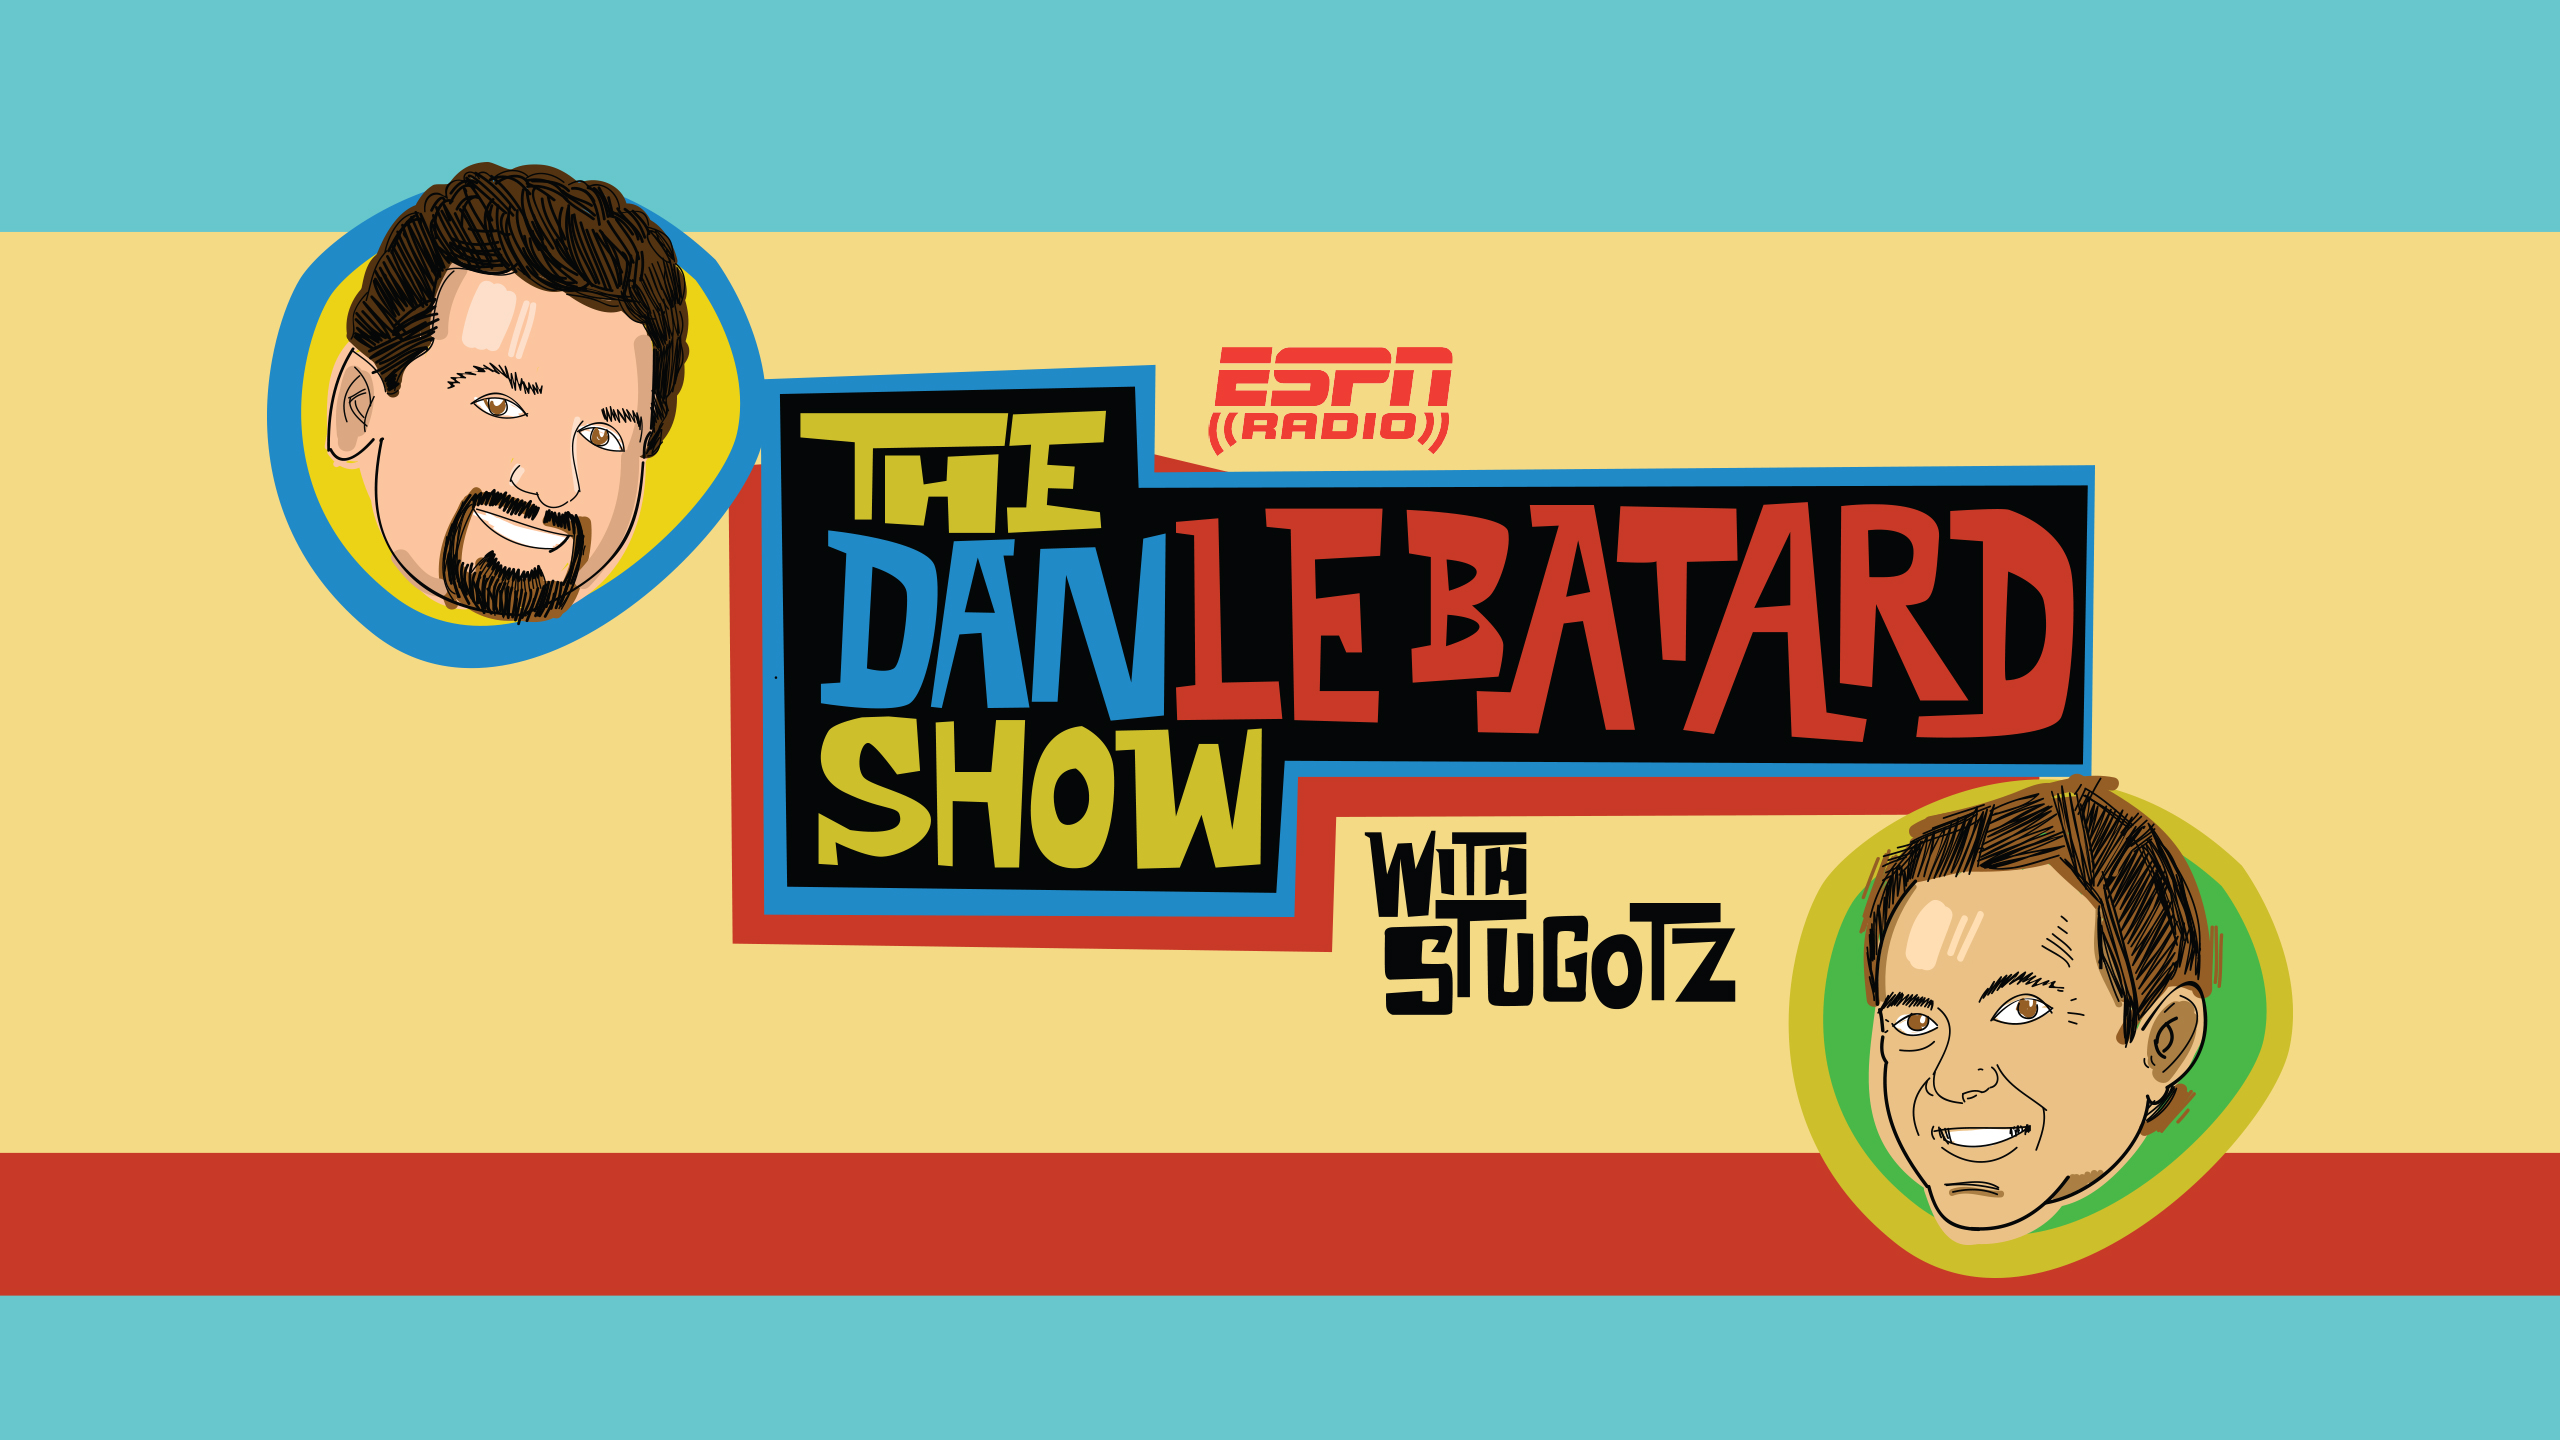 Wed, 11/14 - The Dan Le Batard Show with Stugotz Presented by Progressive